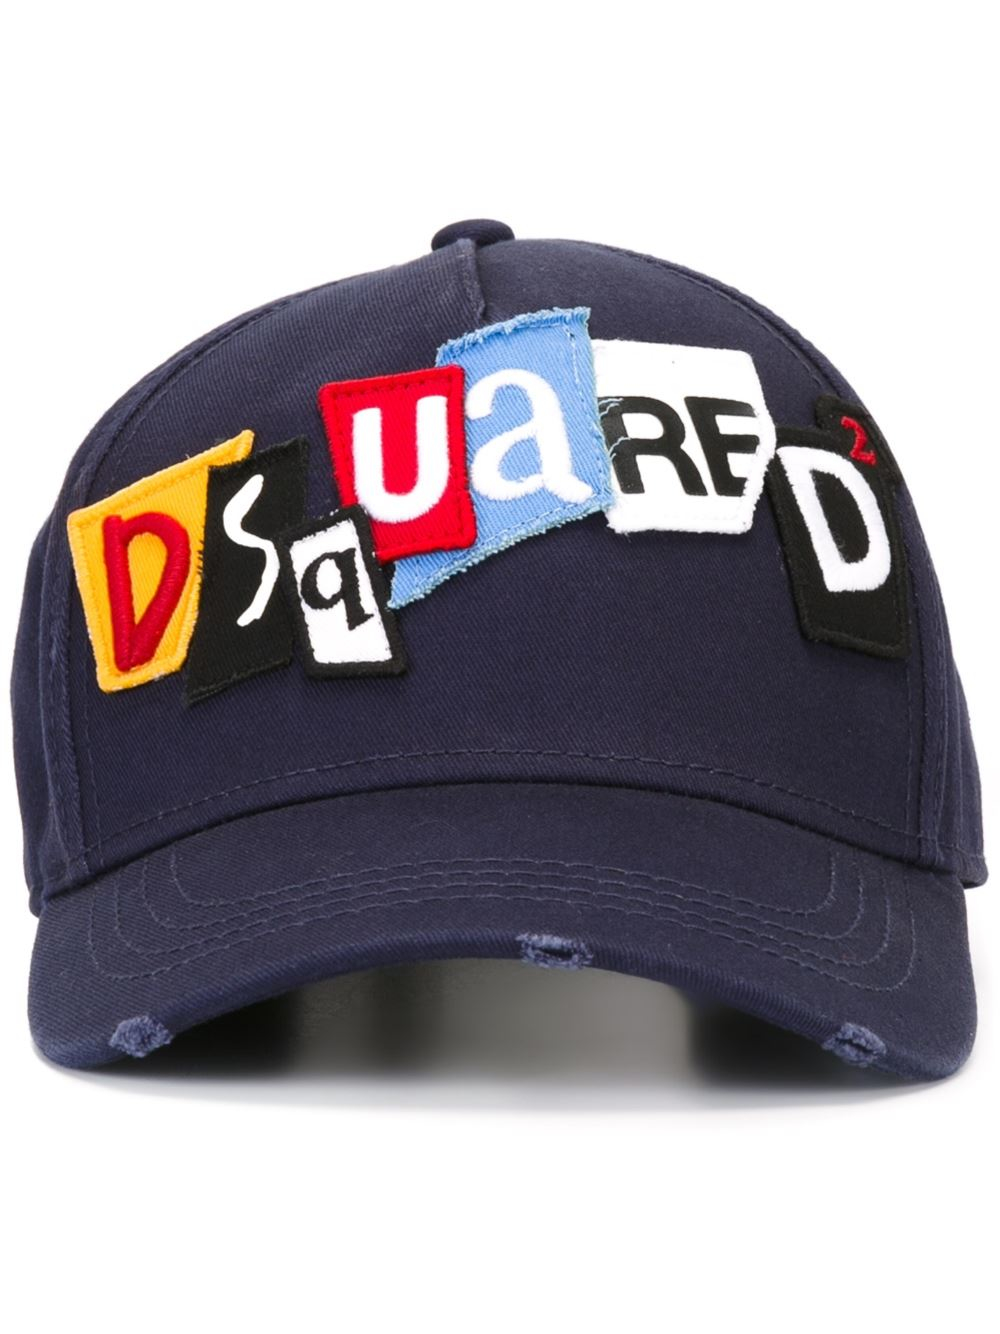 Lyst - DSquared² Punk Patch Baseball Cap in Blue for Men eaa787d716c